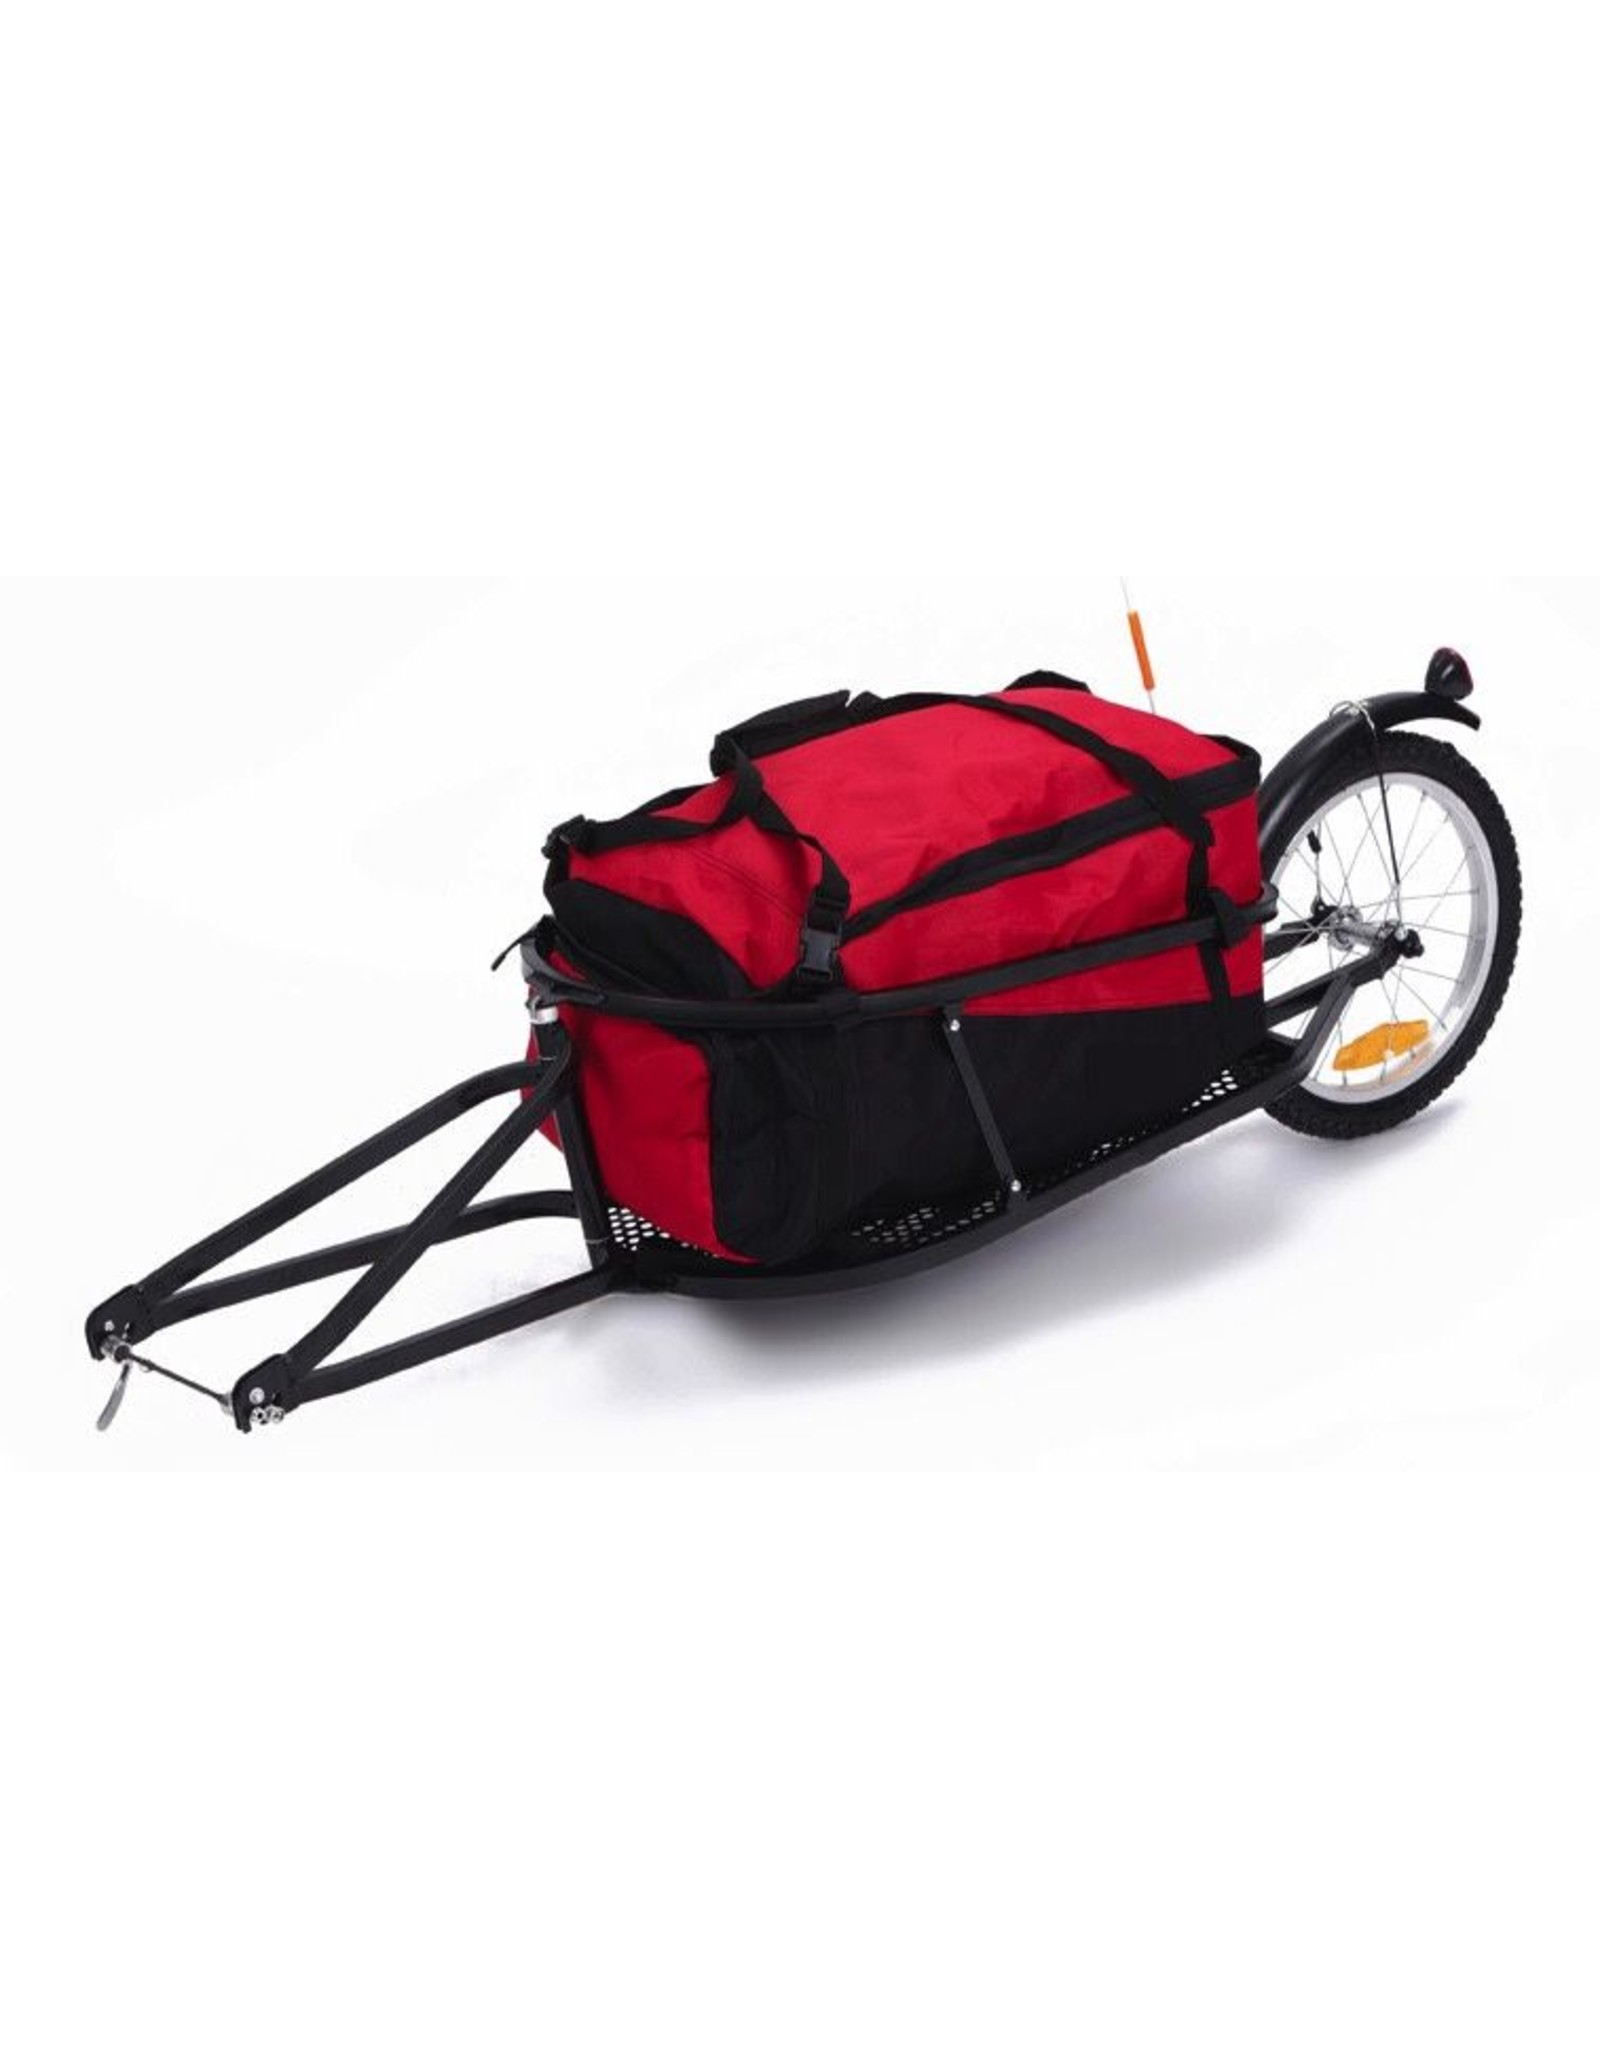 Damco One Wheel Bike Cargo Trailer